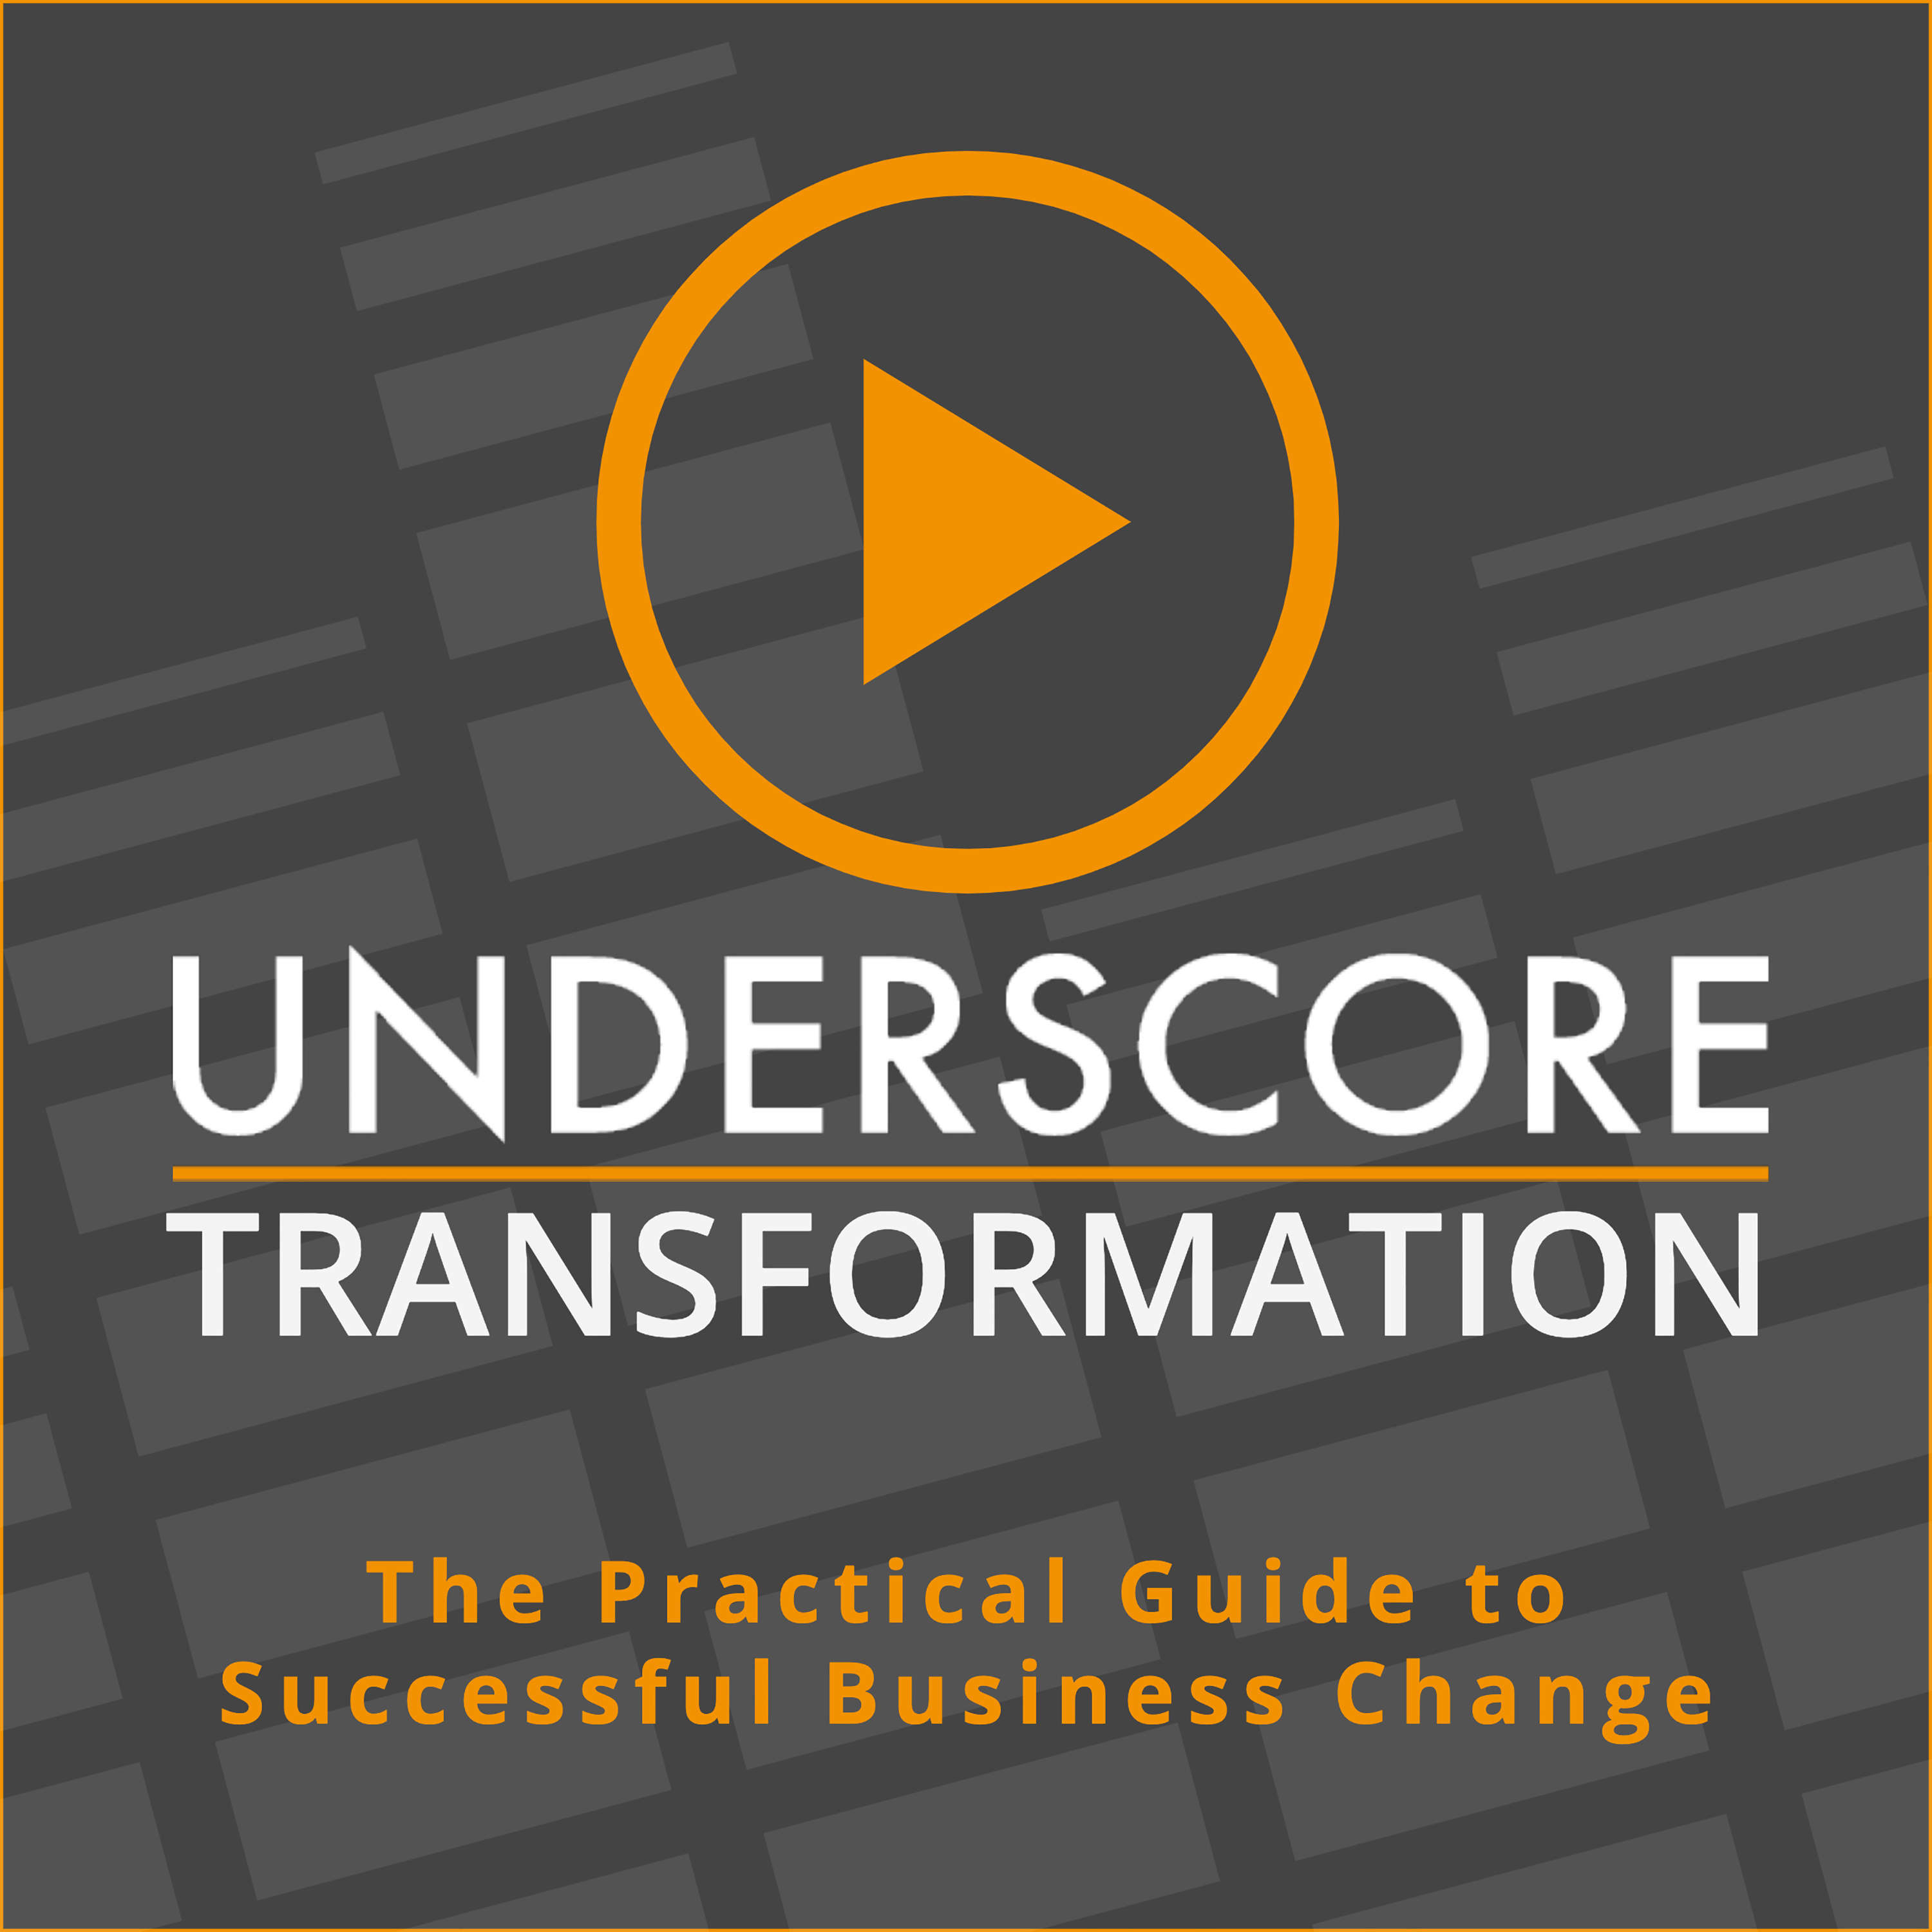 Business Transformation, a view from the top - Interview With Nick Ranier